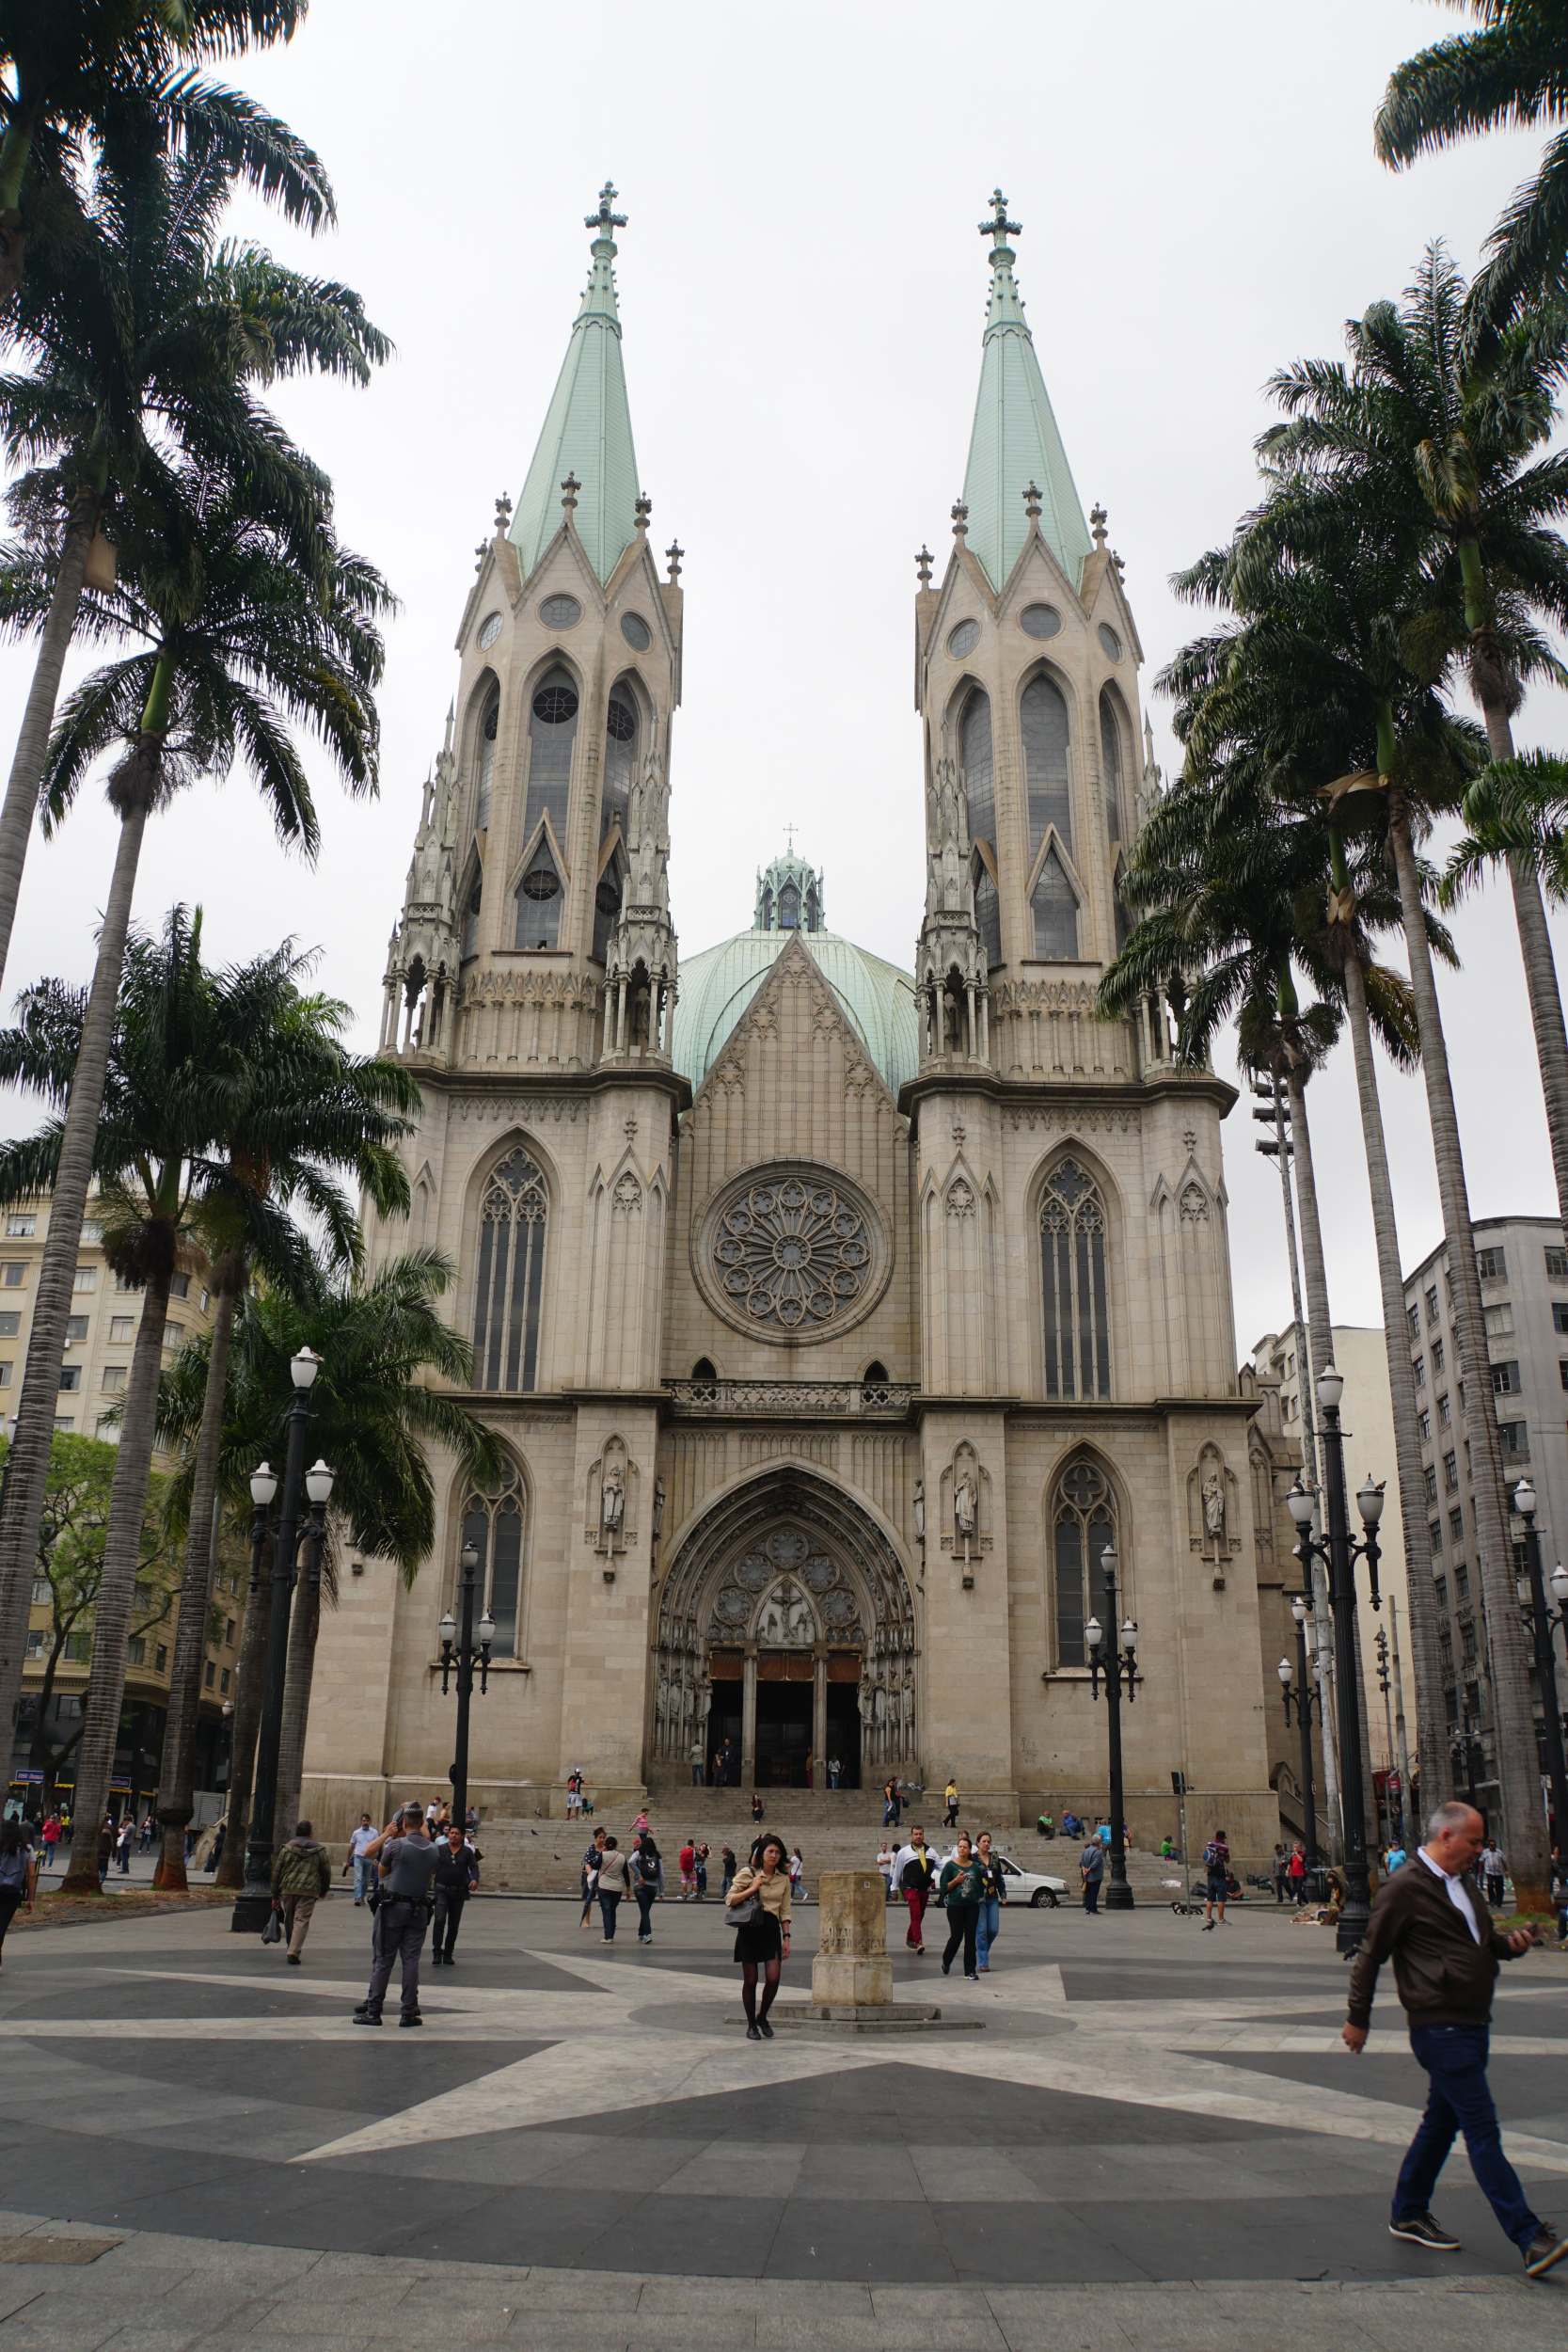 42. Cathedral in Sao Paulo